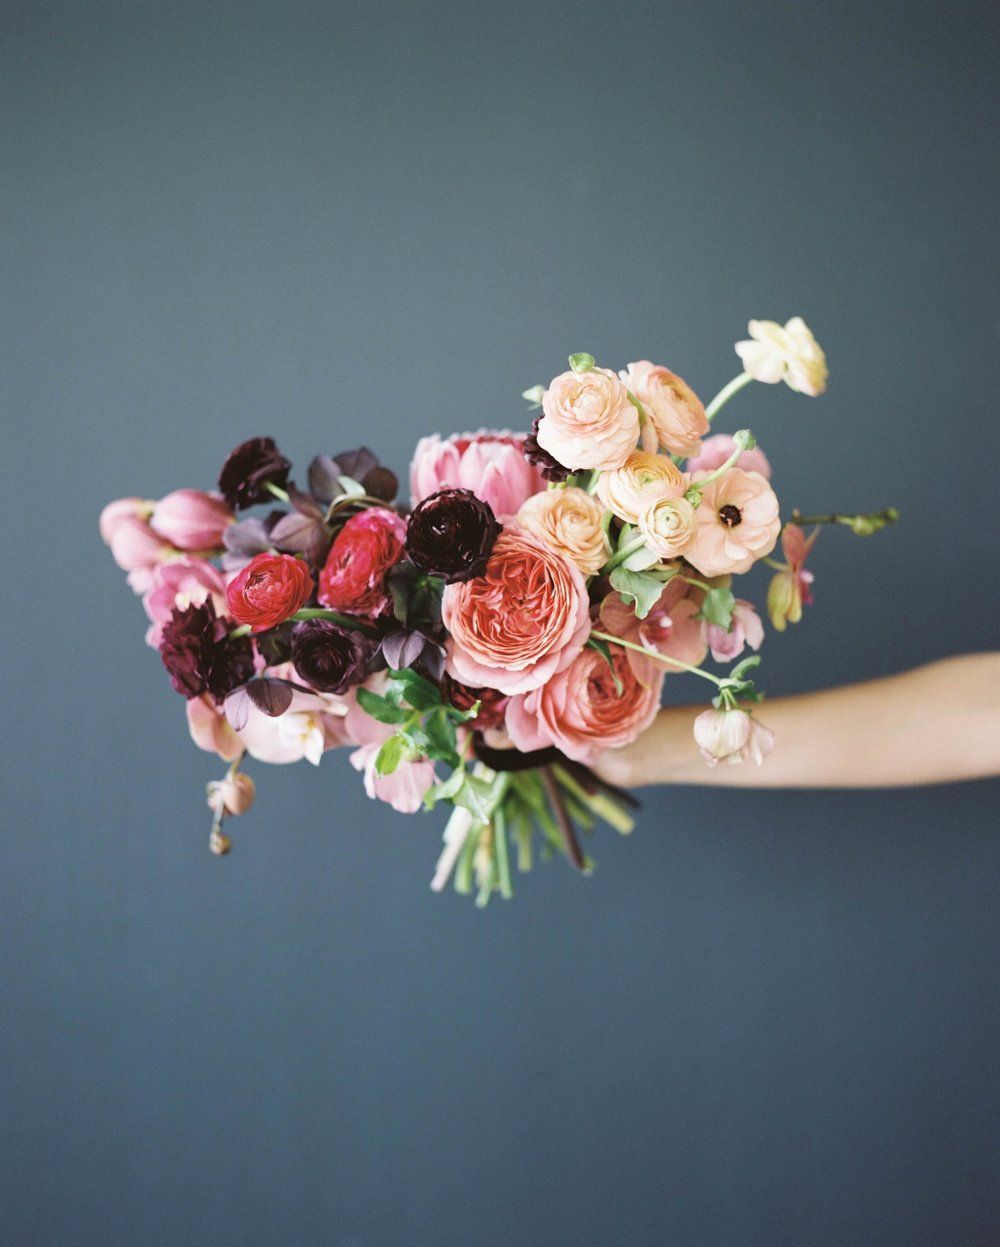 beautiful bouquet of wedding flowers - ready for the initial meeting and ready to start planning!